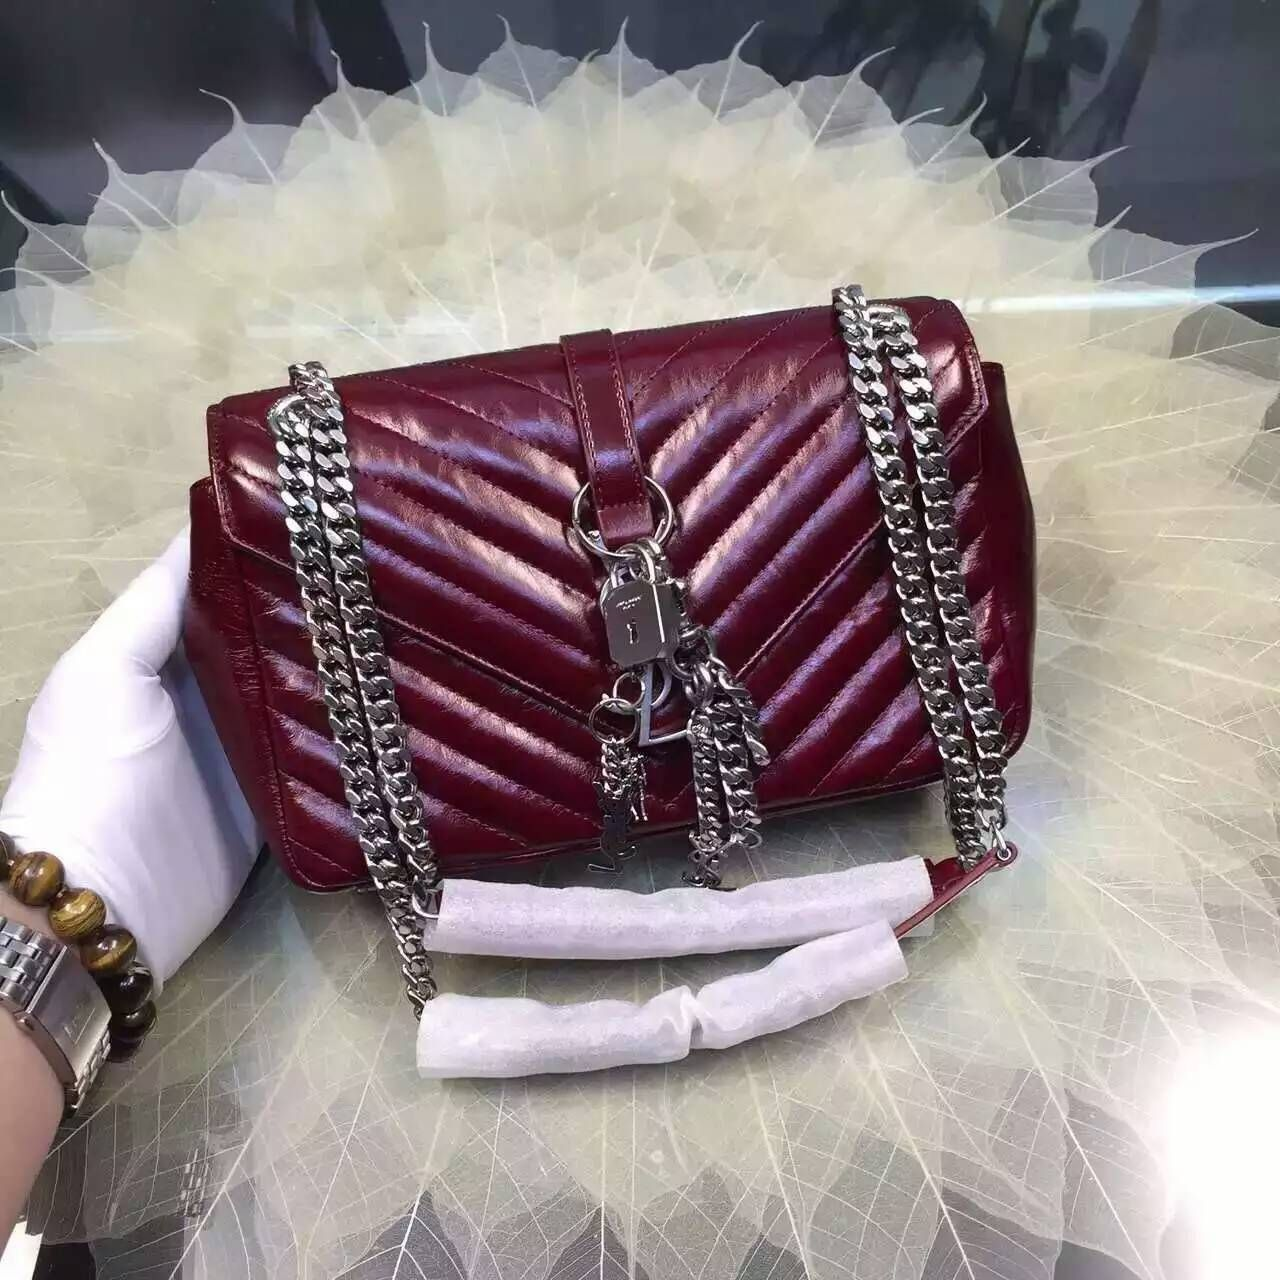 2016 Cheap YSL Out Sale with Free Shipping-Saint Laurent Classic Medium  Baby Monogram Satchel in Bordeaux Matelasse Leather Silver dc0c2e842362c